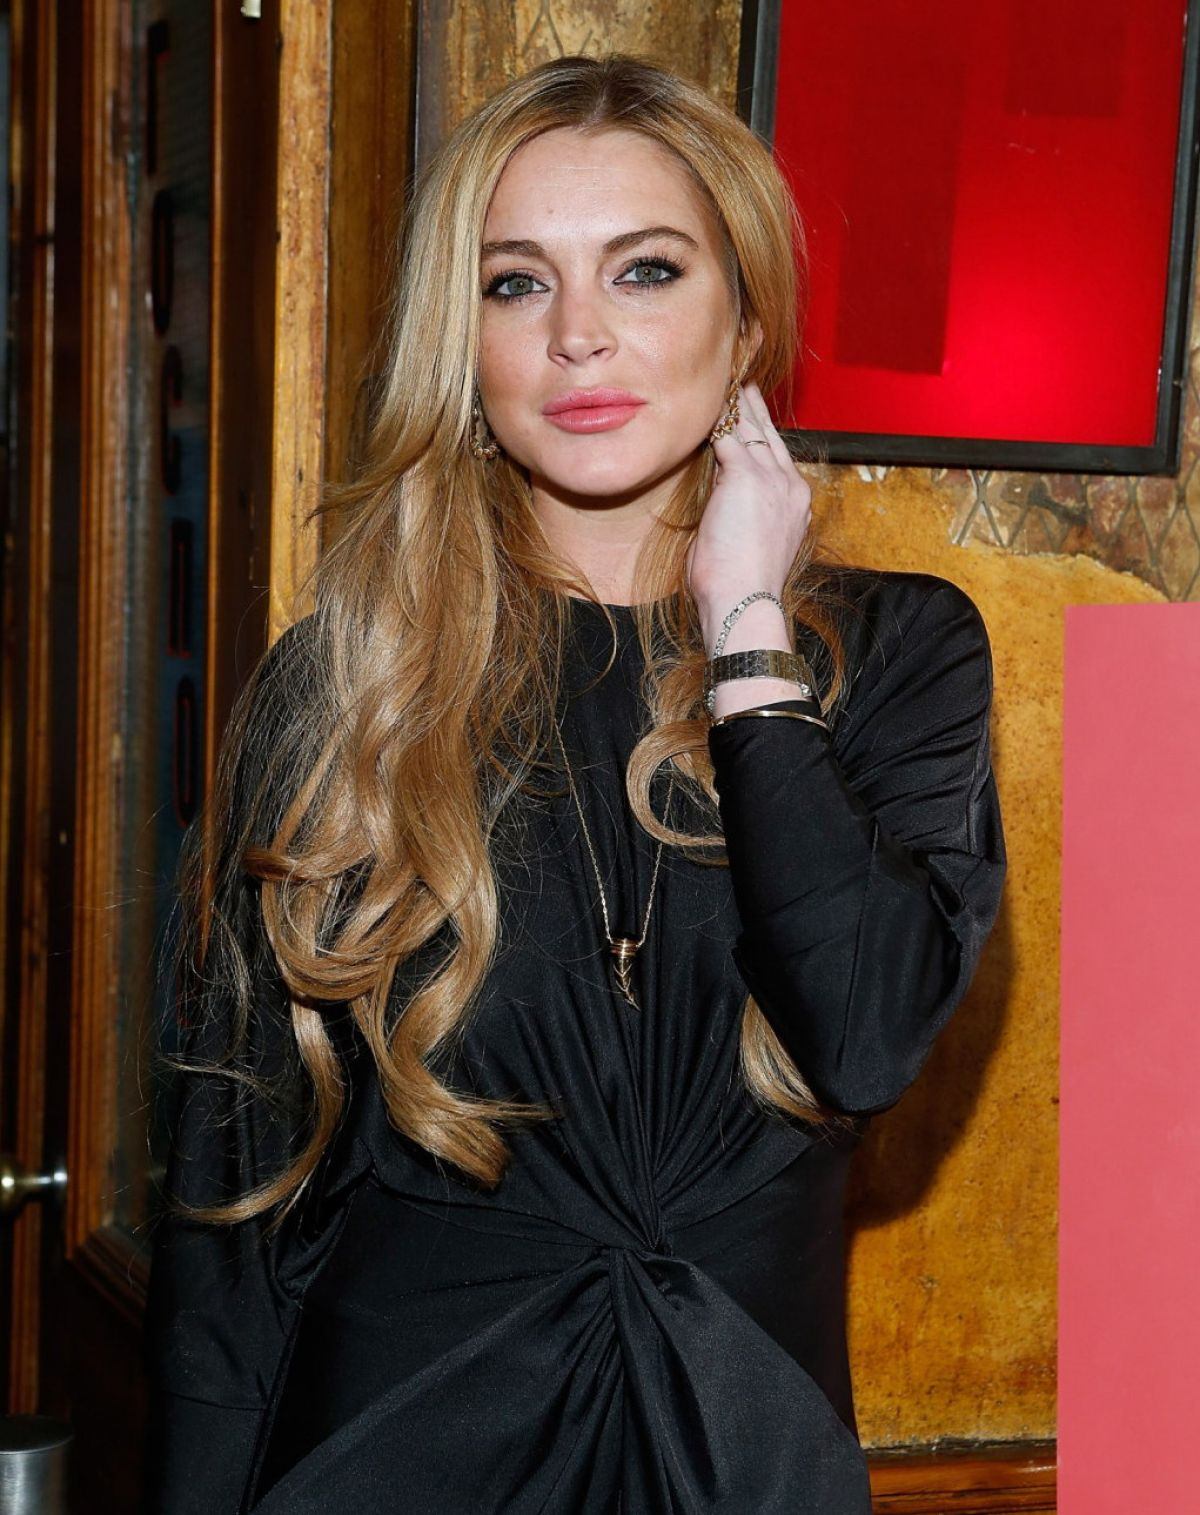 Lindsay Lohan At Just Sing It App Launch Event In New York